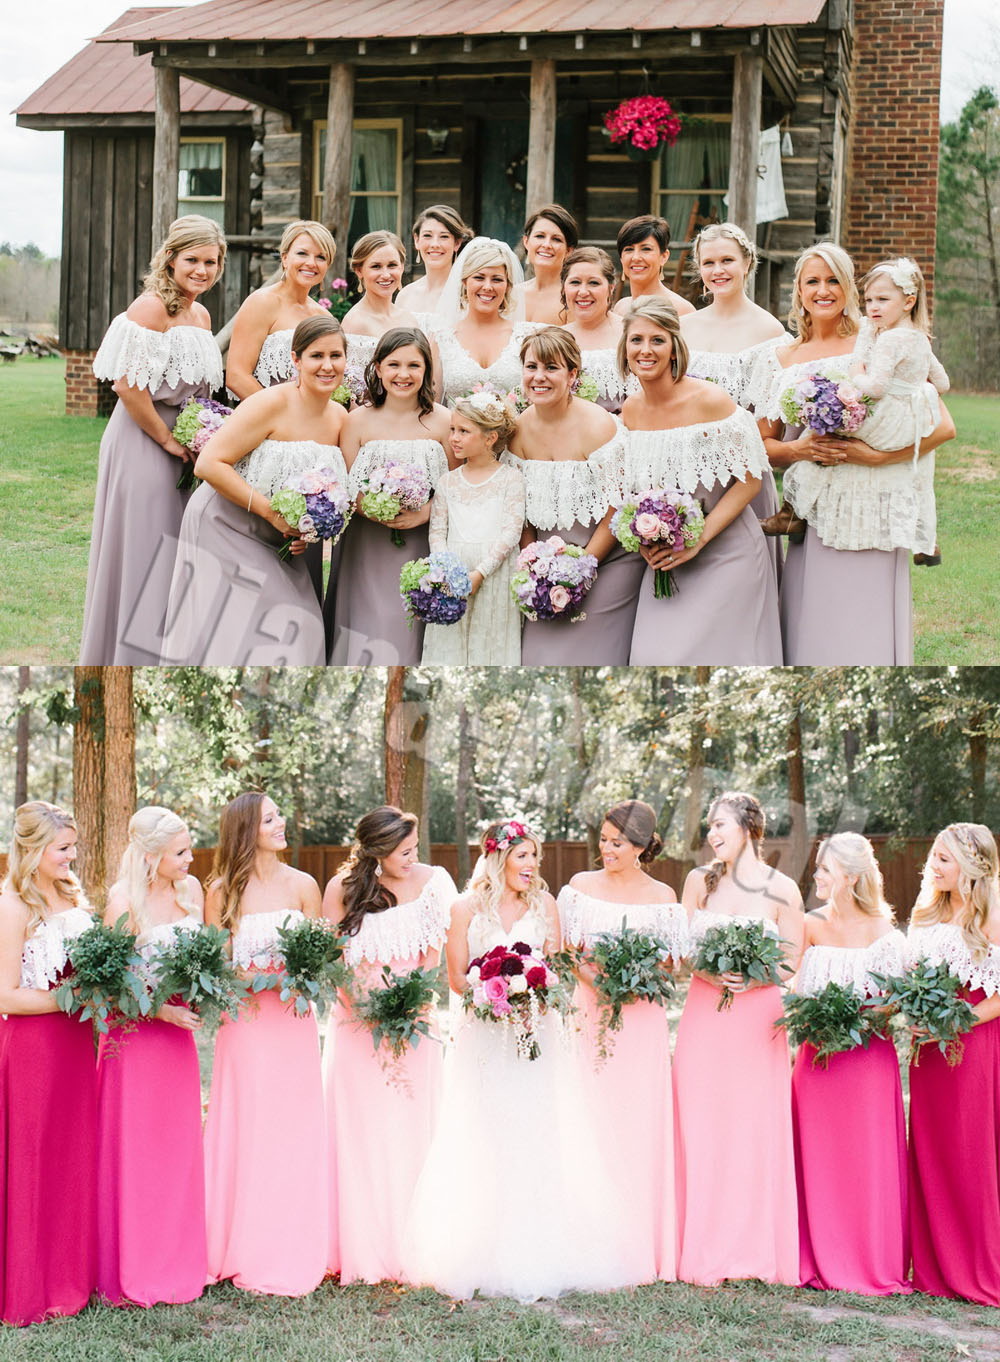 Elegant bohemian strapless lace covered backless bridesmaid dress elegant bohemian strapless lace covered backless bridesmaid dress bridal shower wedding party dresses garden wedding plus size in bridesmaid dresses from ombrellifo Images